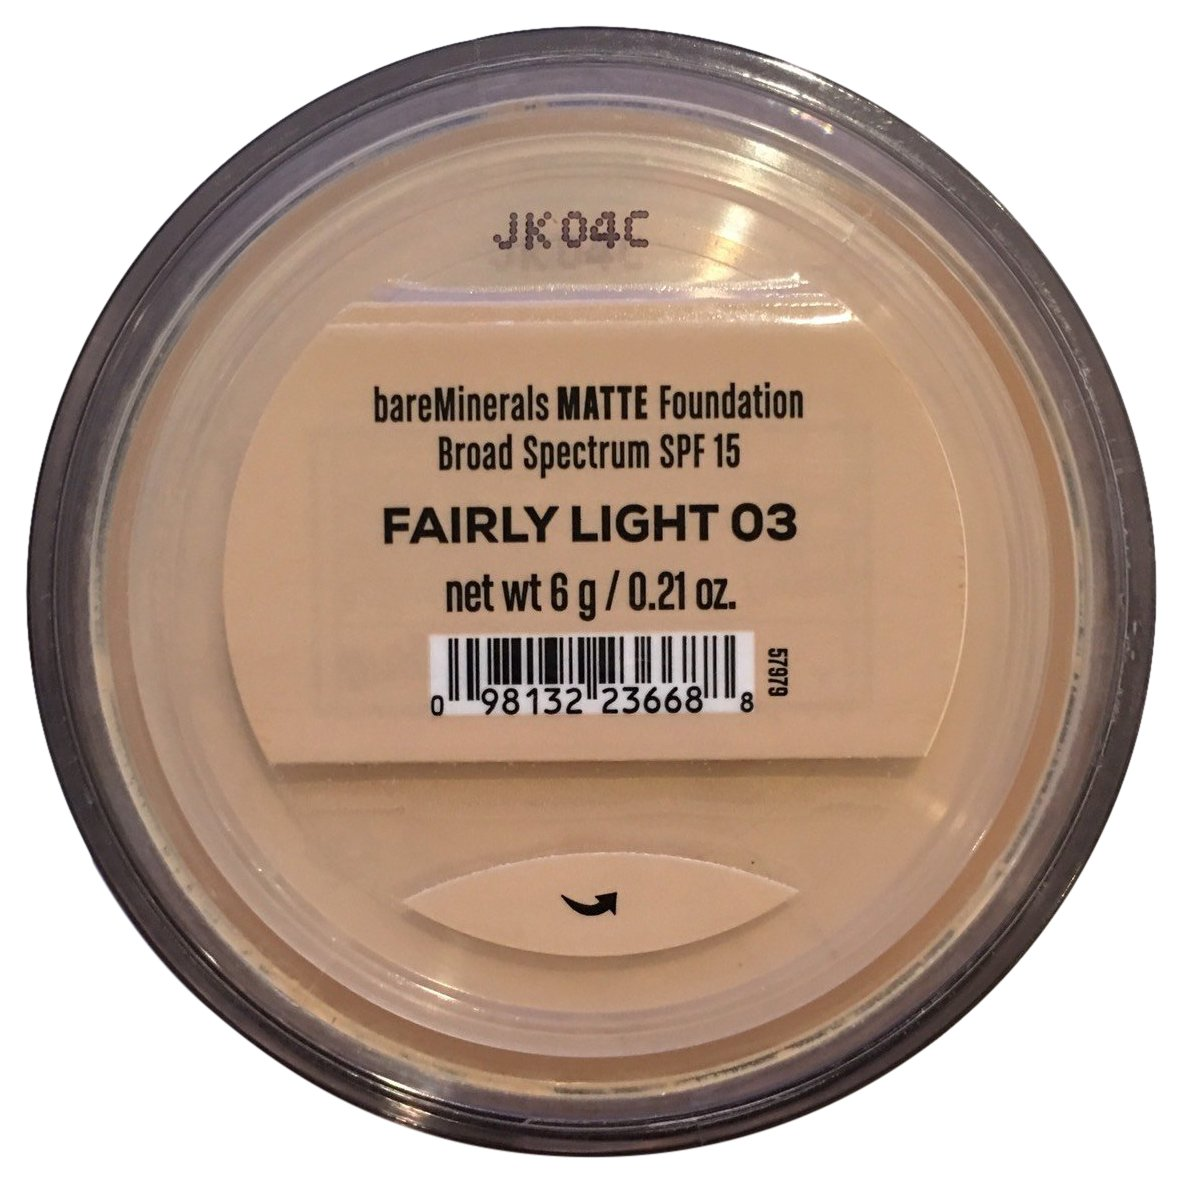 Bare Escentuals Bare Minerals Foundation Matte SPF 15 Fairly Light, Large, 6 g